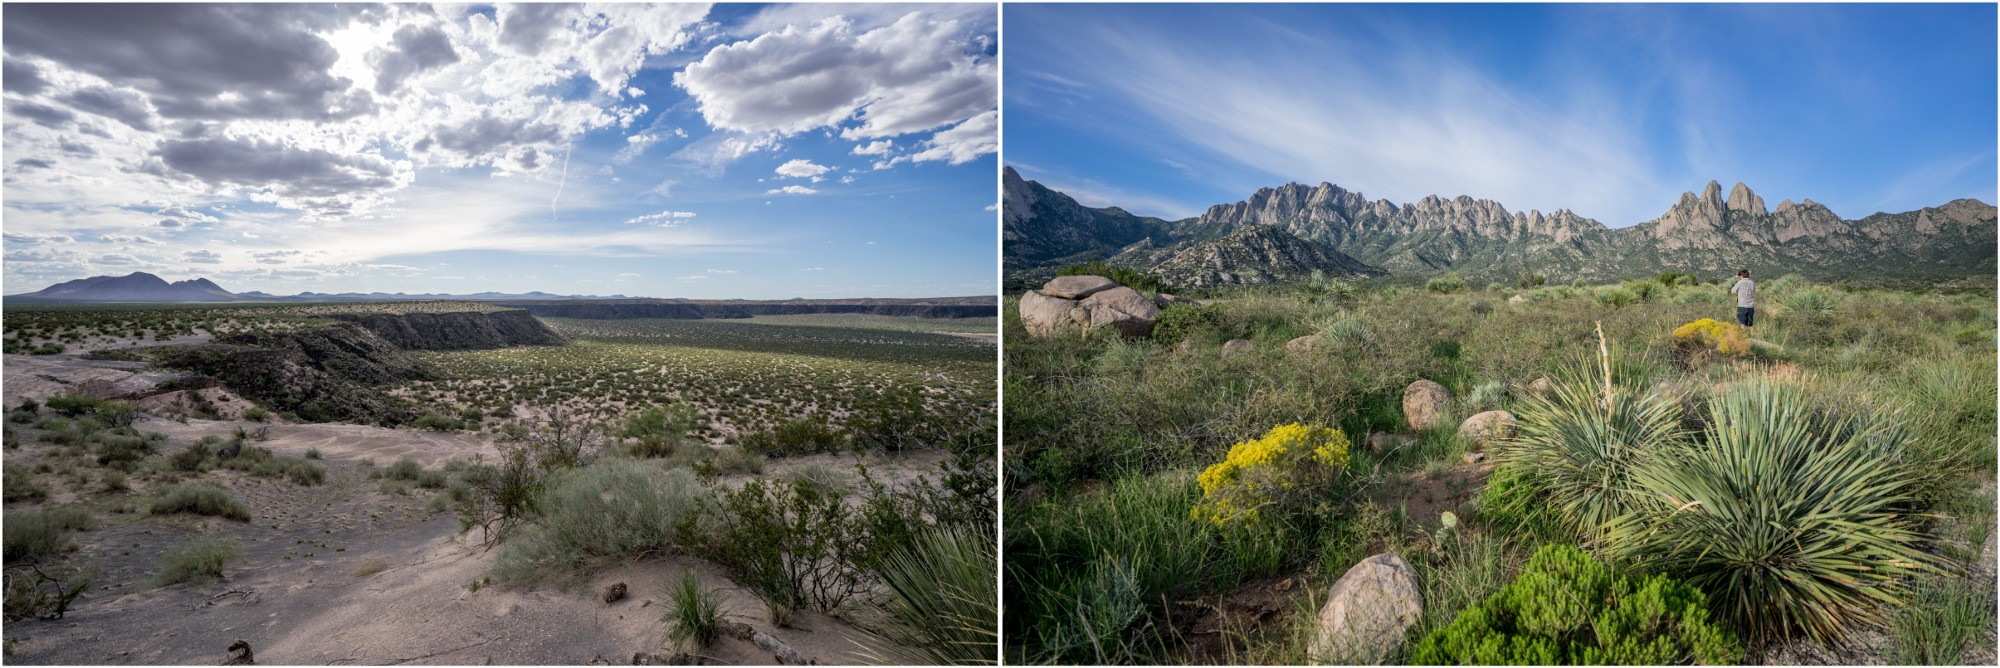 - Left: Kilbourne Hole in Organ Mountains-Desert Peaks National Monument is a site of geologic and historic importance, used as training grounds for the Apollo missions. Right: The Organ Mountains, site of the first battles between Union and Confederate soldiers in New Mexico, are now a favorite recreation area in the monument.